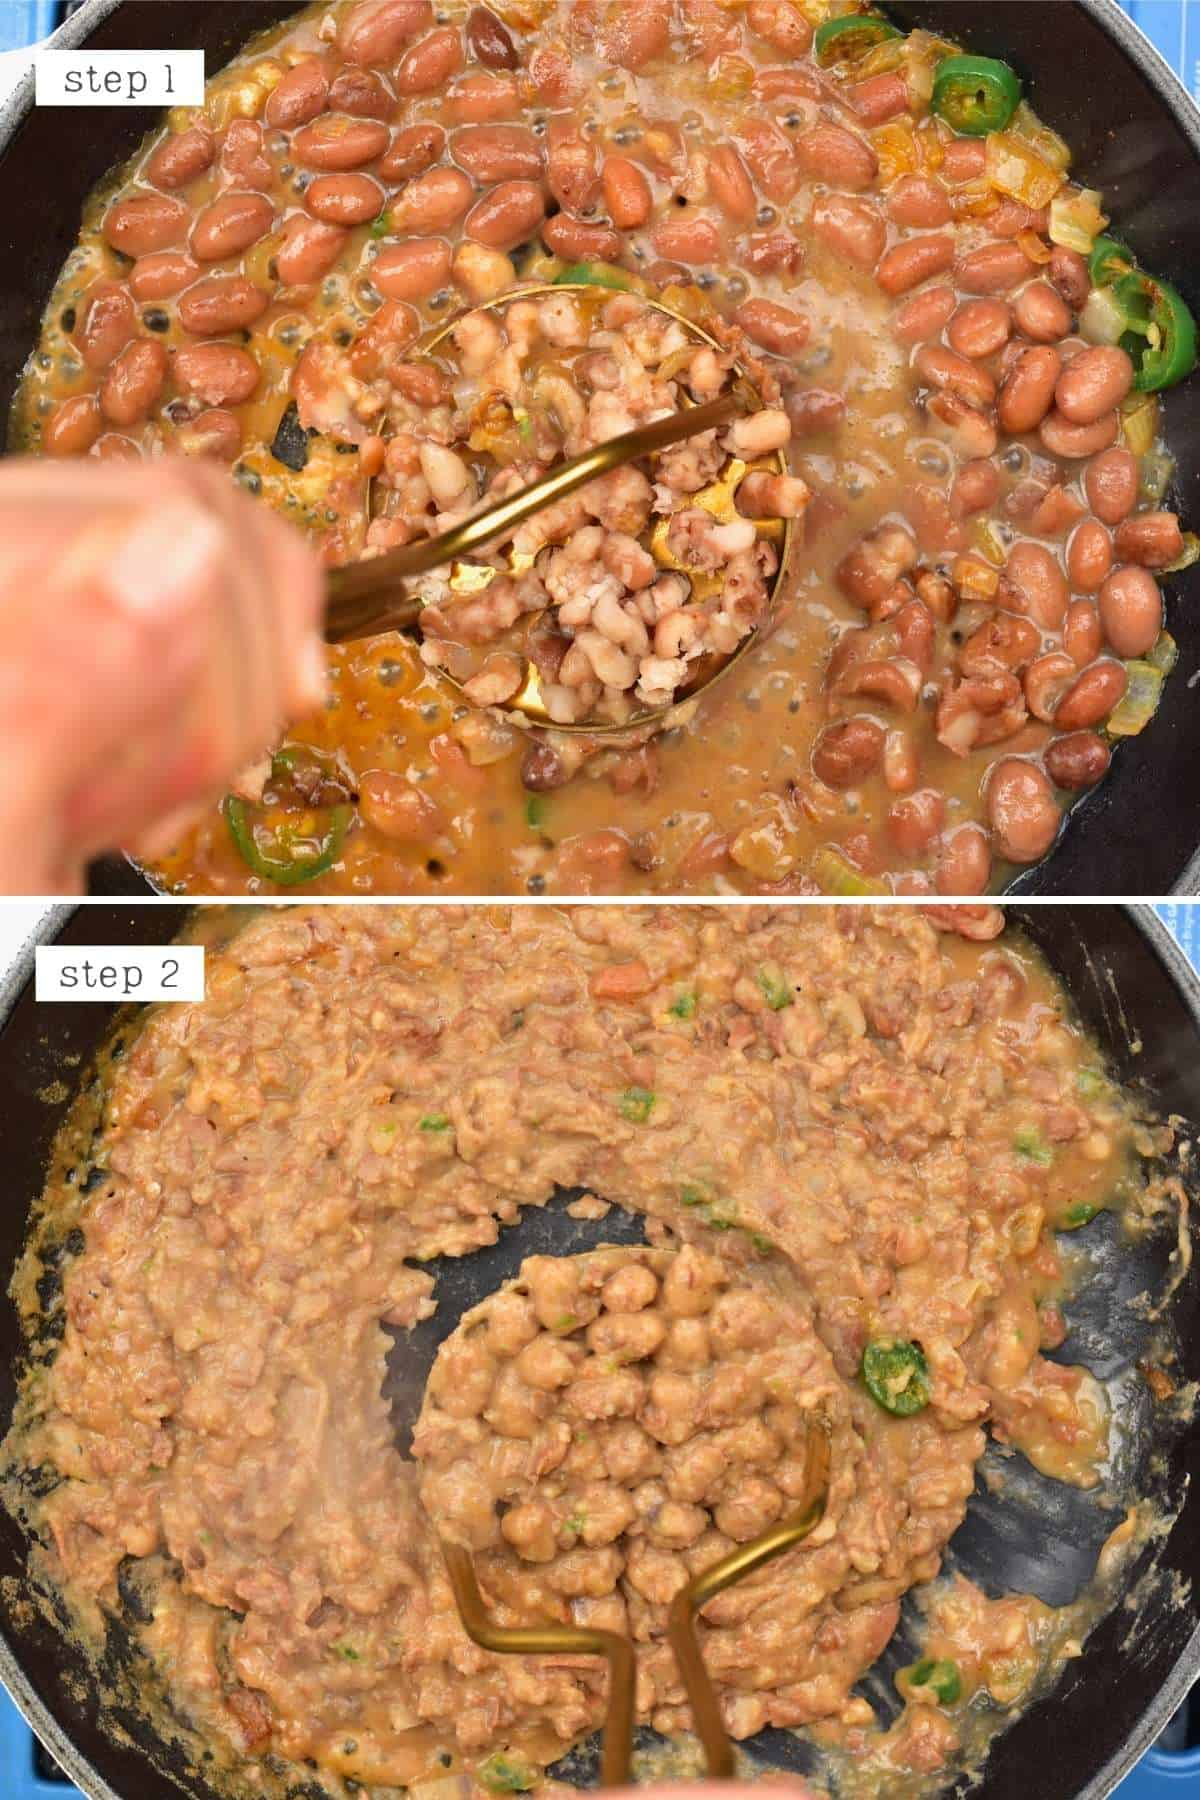 Steps for making refried beans (frijoles refritos)